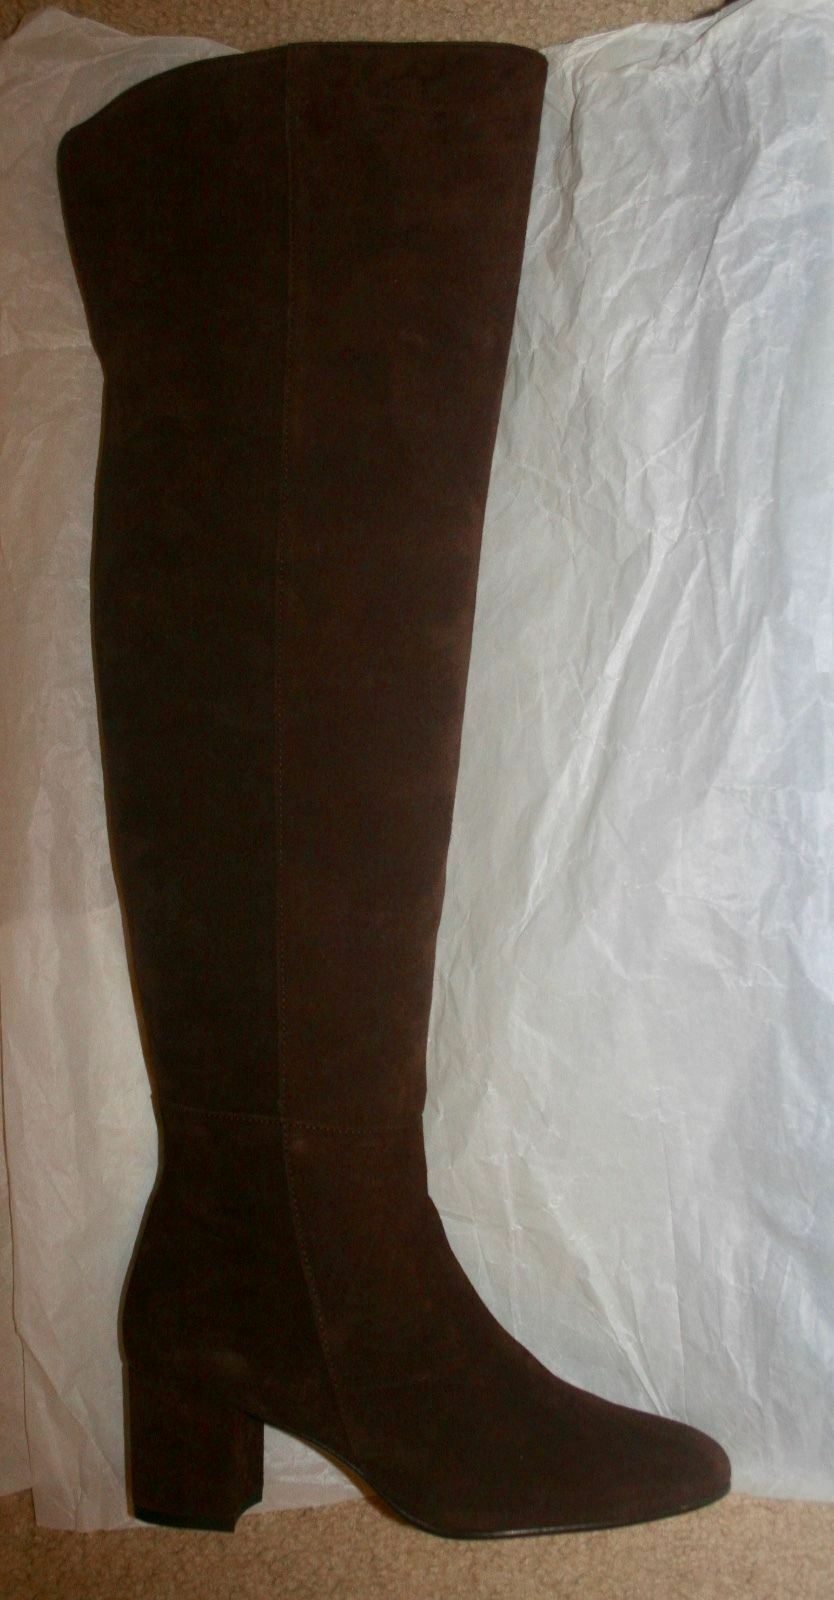 J.CREW SUEDE OVER-THE-KNEE BOOTS SIZE 6,5M DEEP MAPLE F8009